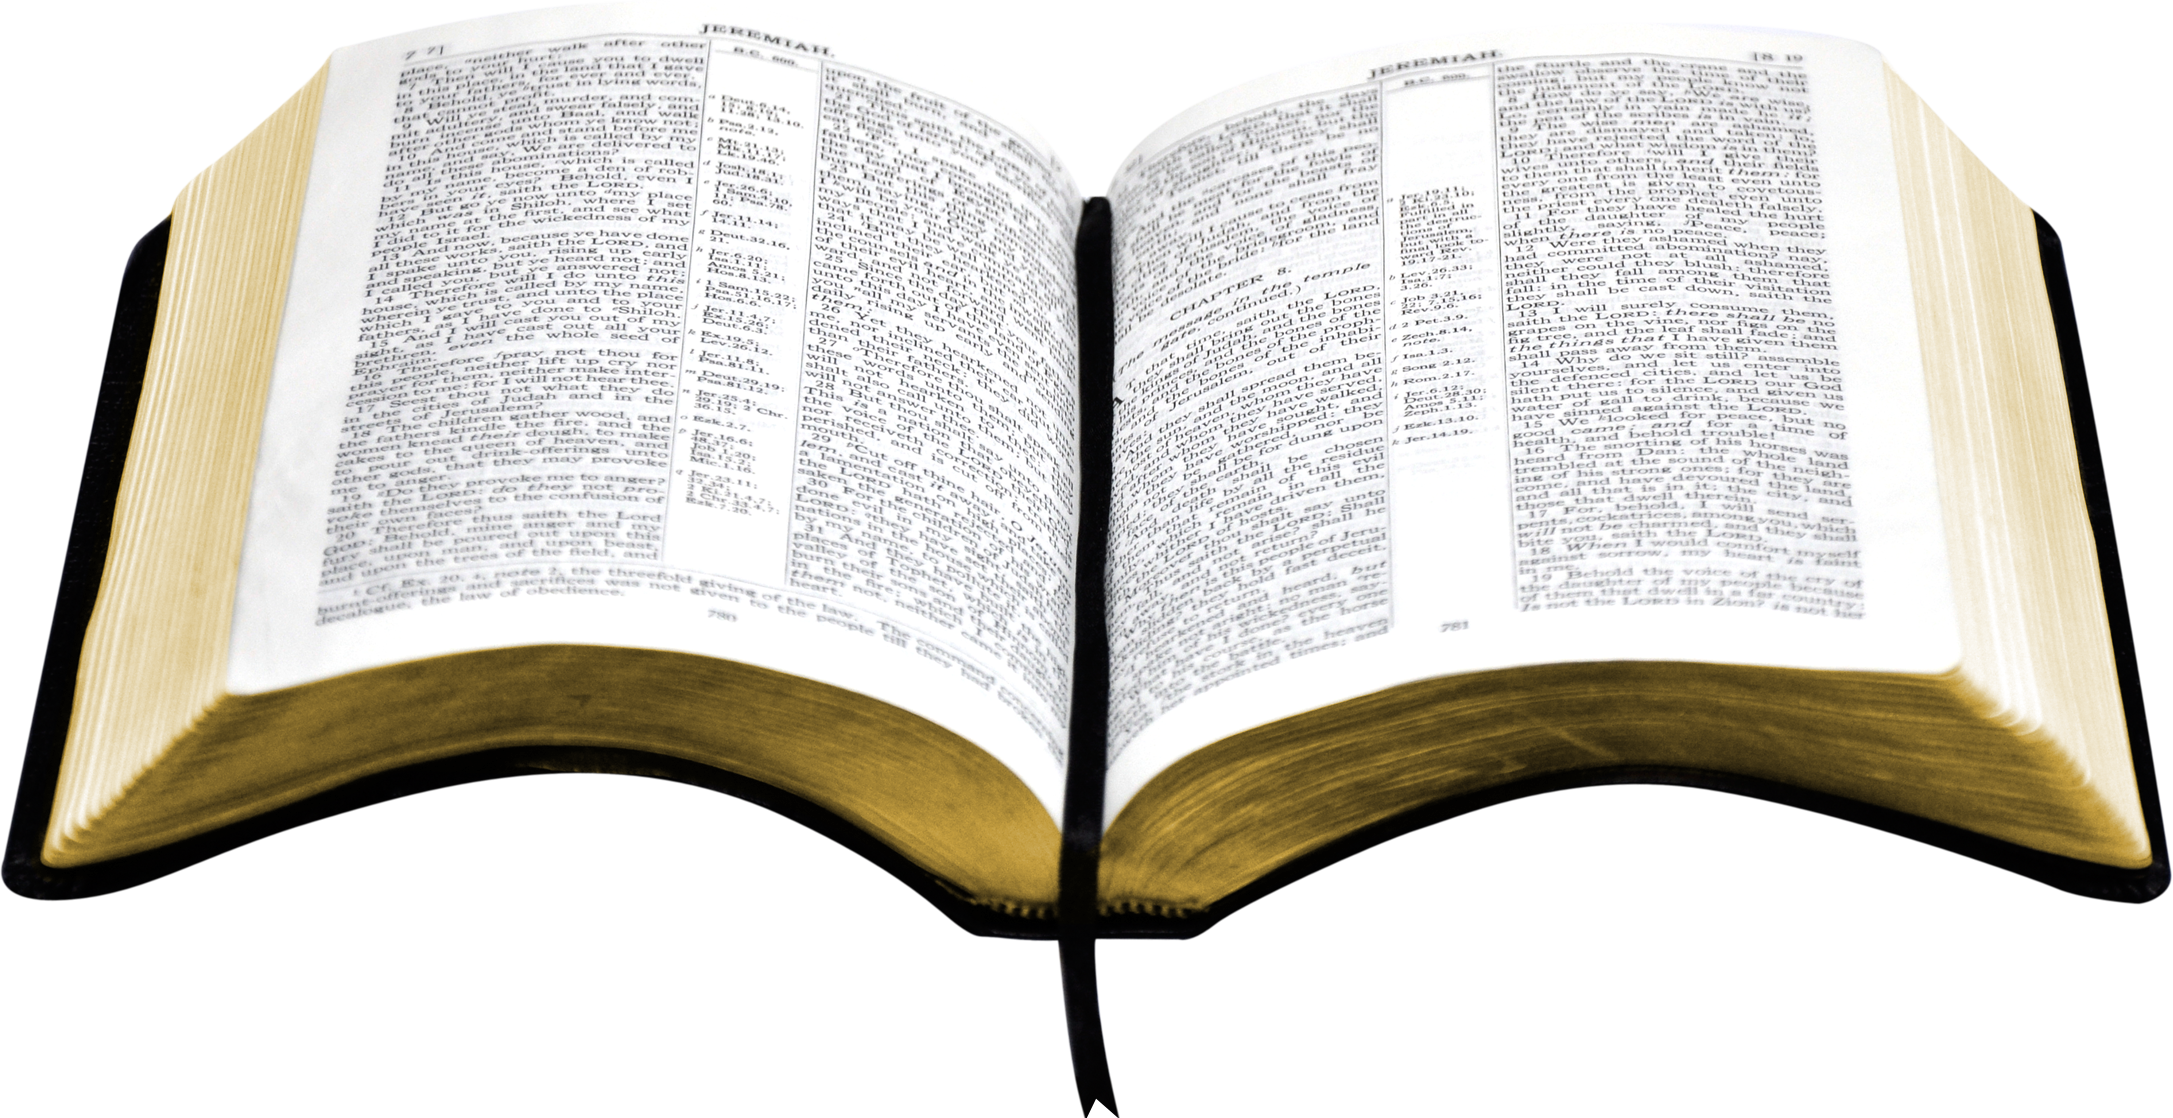 Holy Bible Png Images Free Download 544388 Png Images Pngio